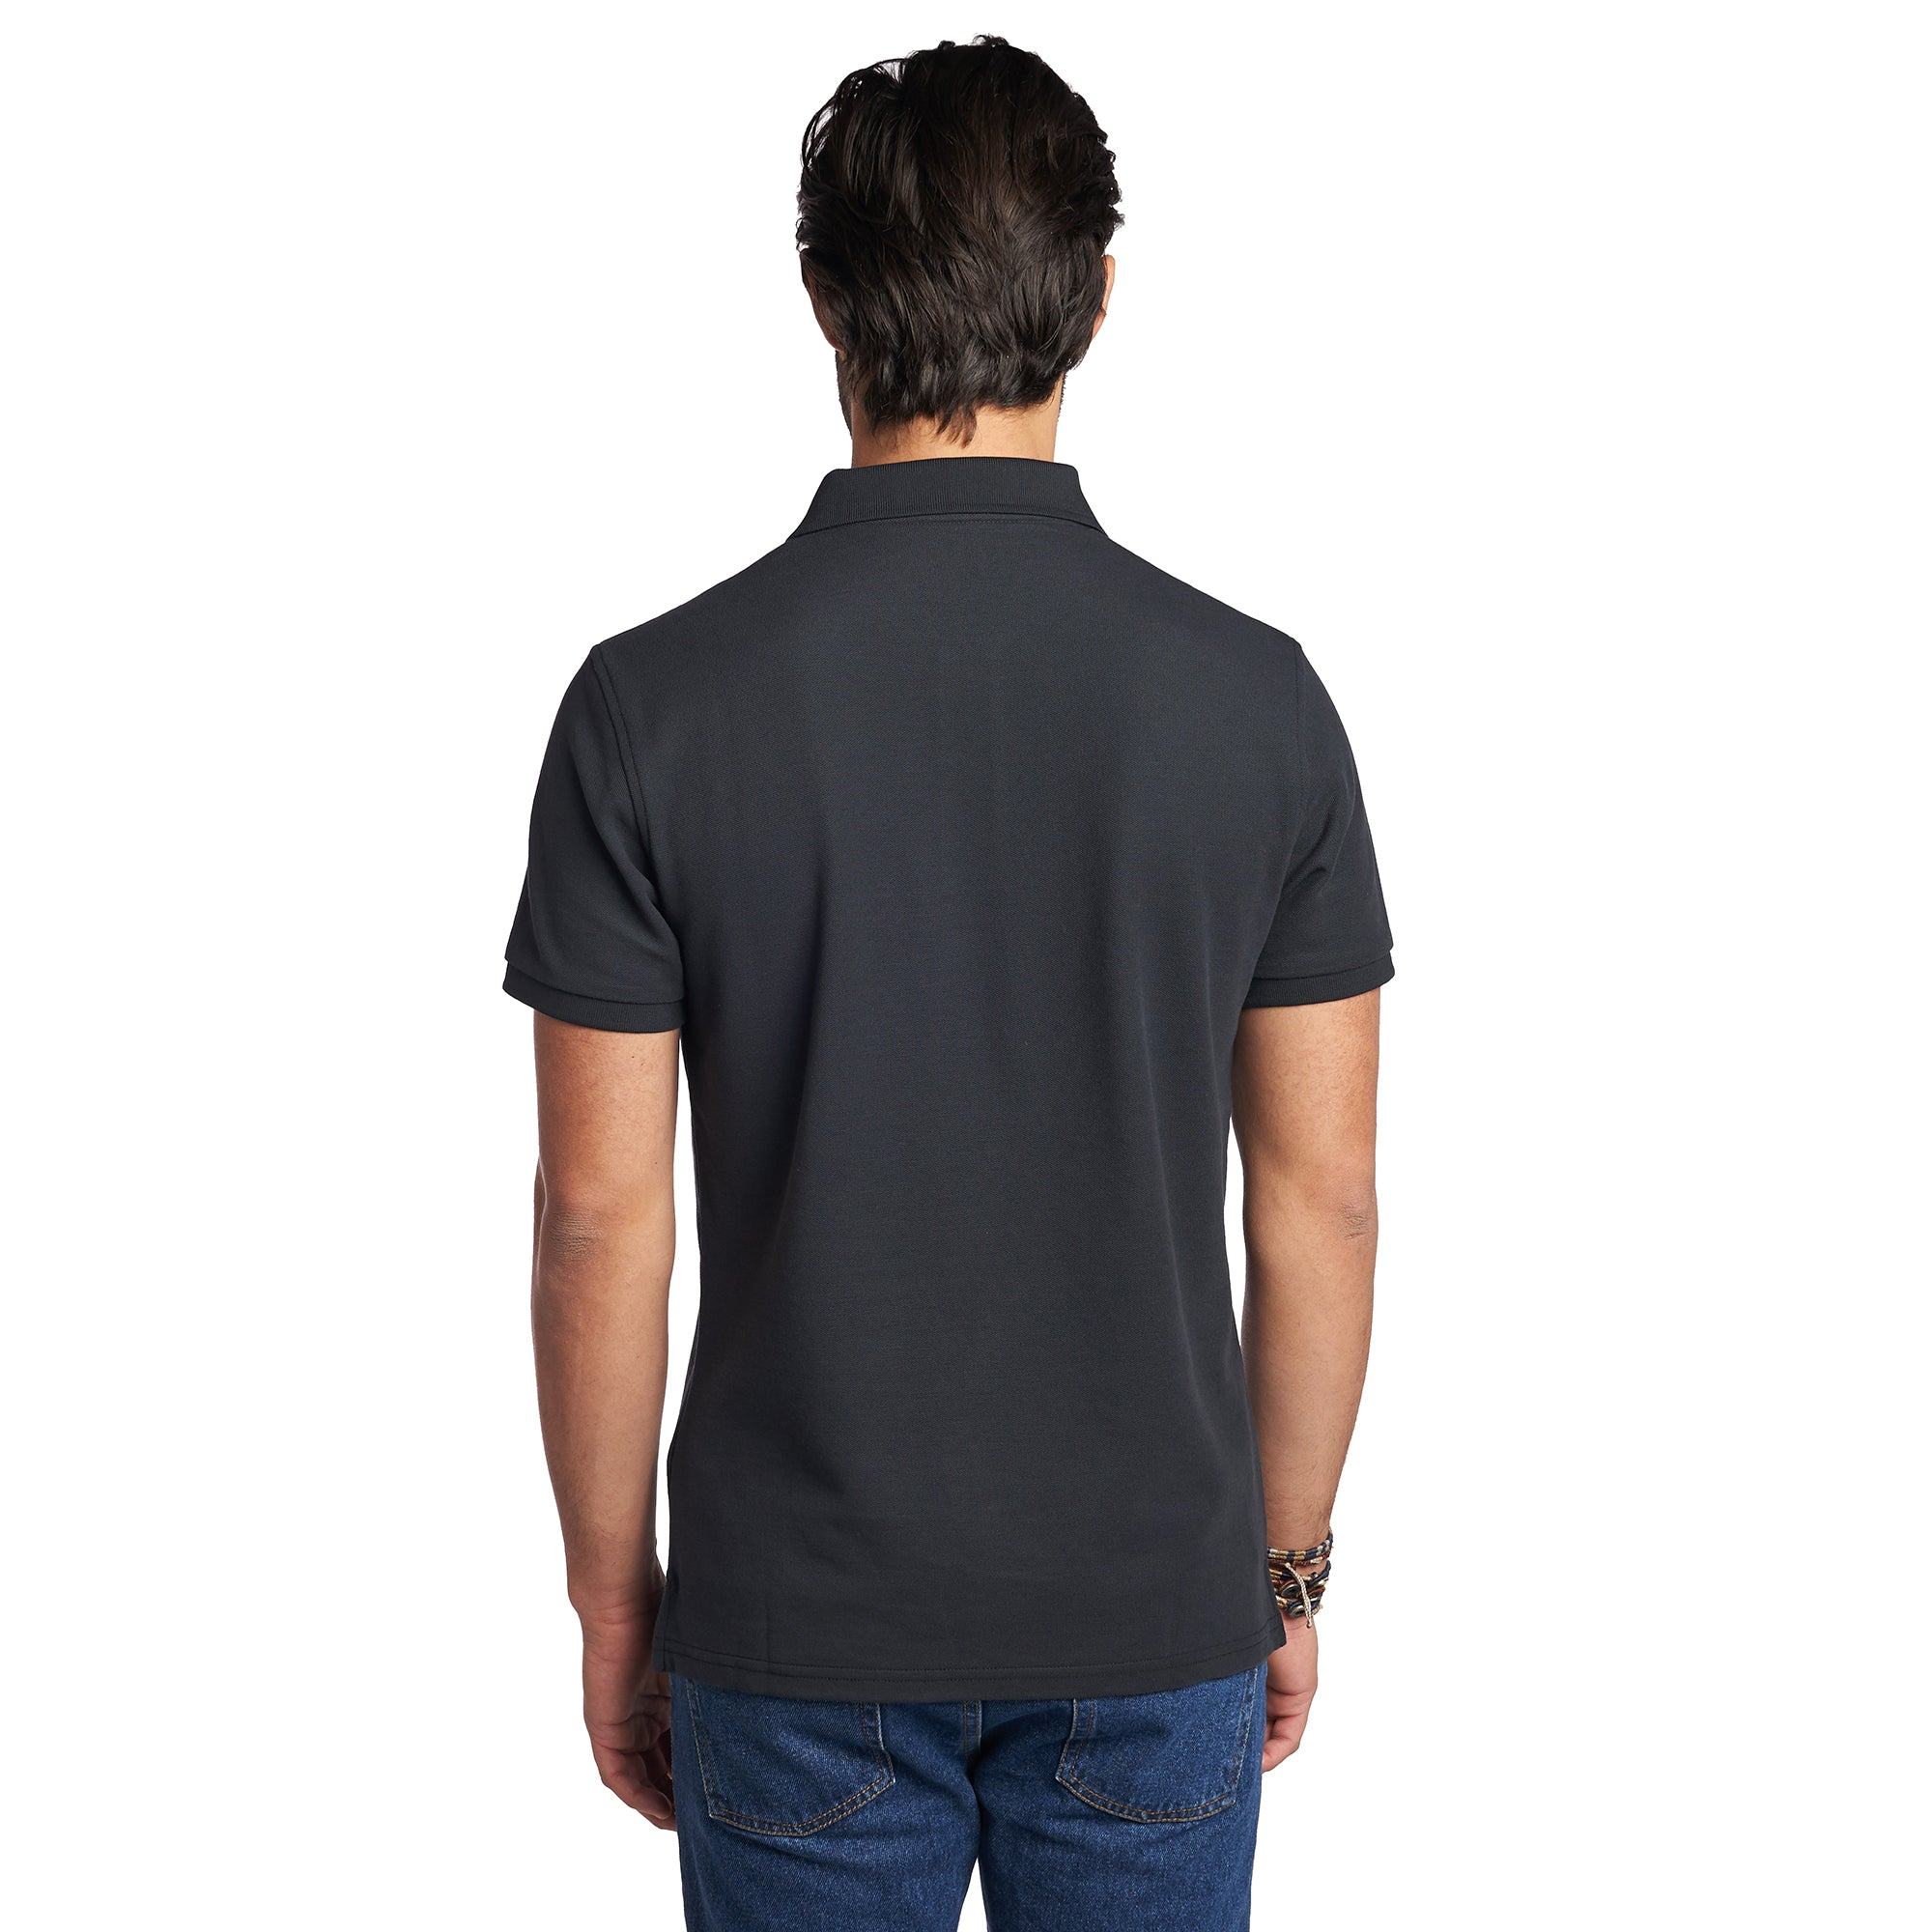 James Polo Shirt - Black